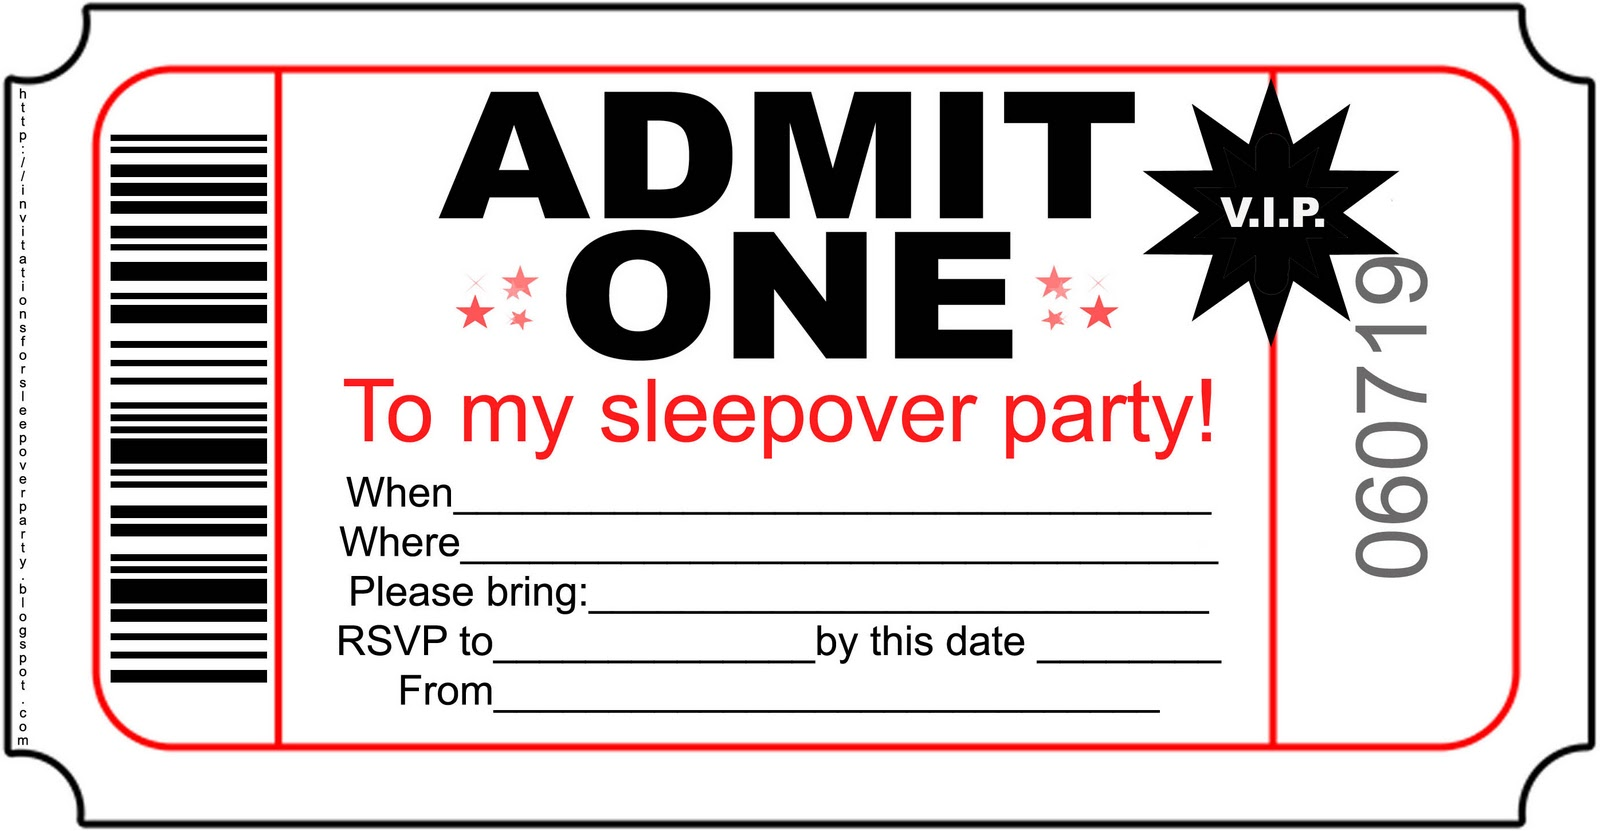 Barcode clipart admit one. Sleepover party invitations sansalvaje